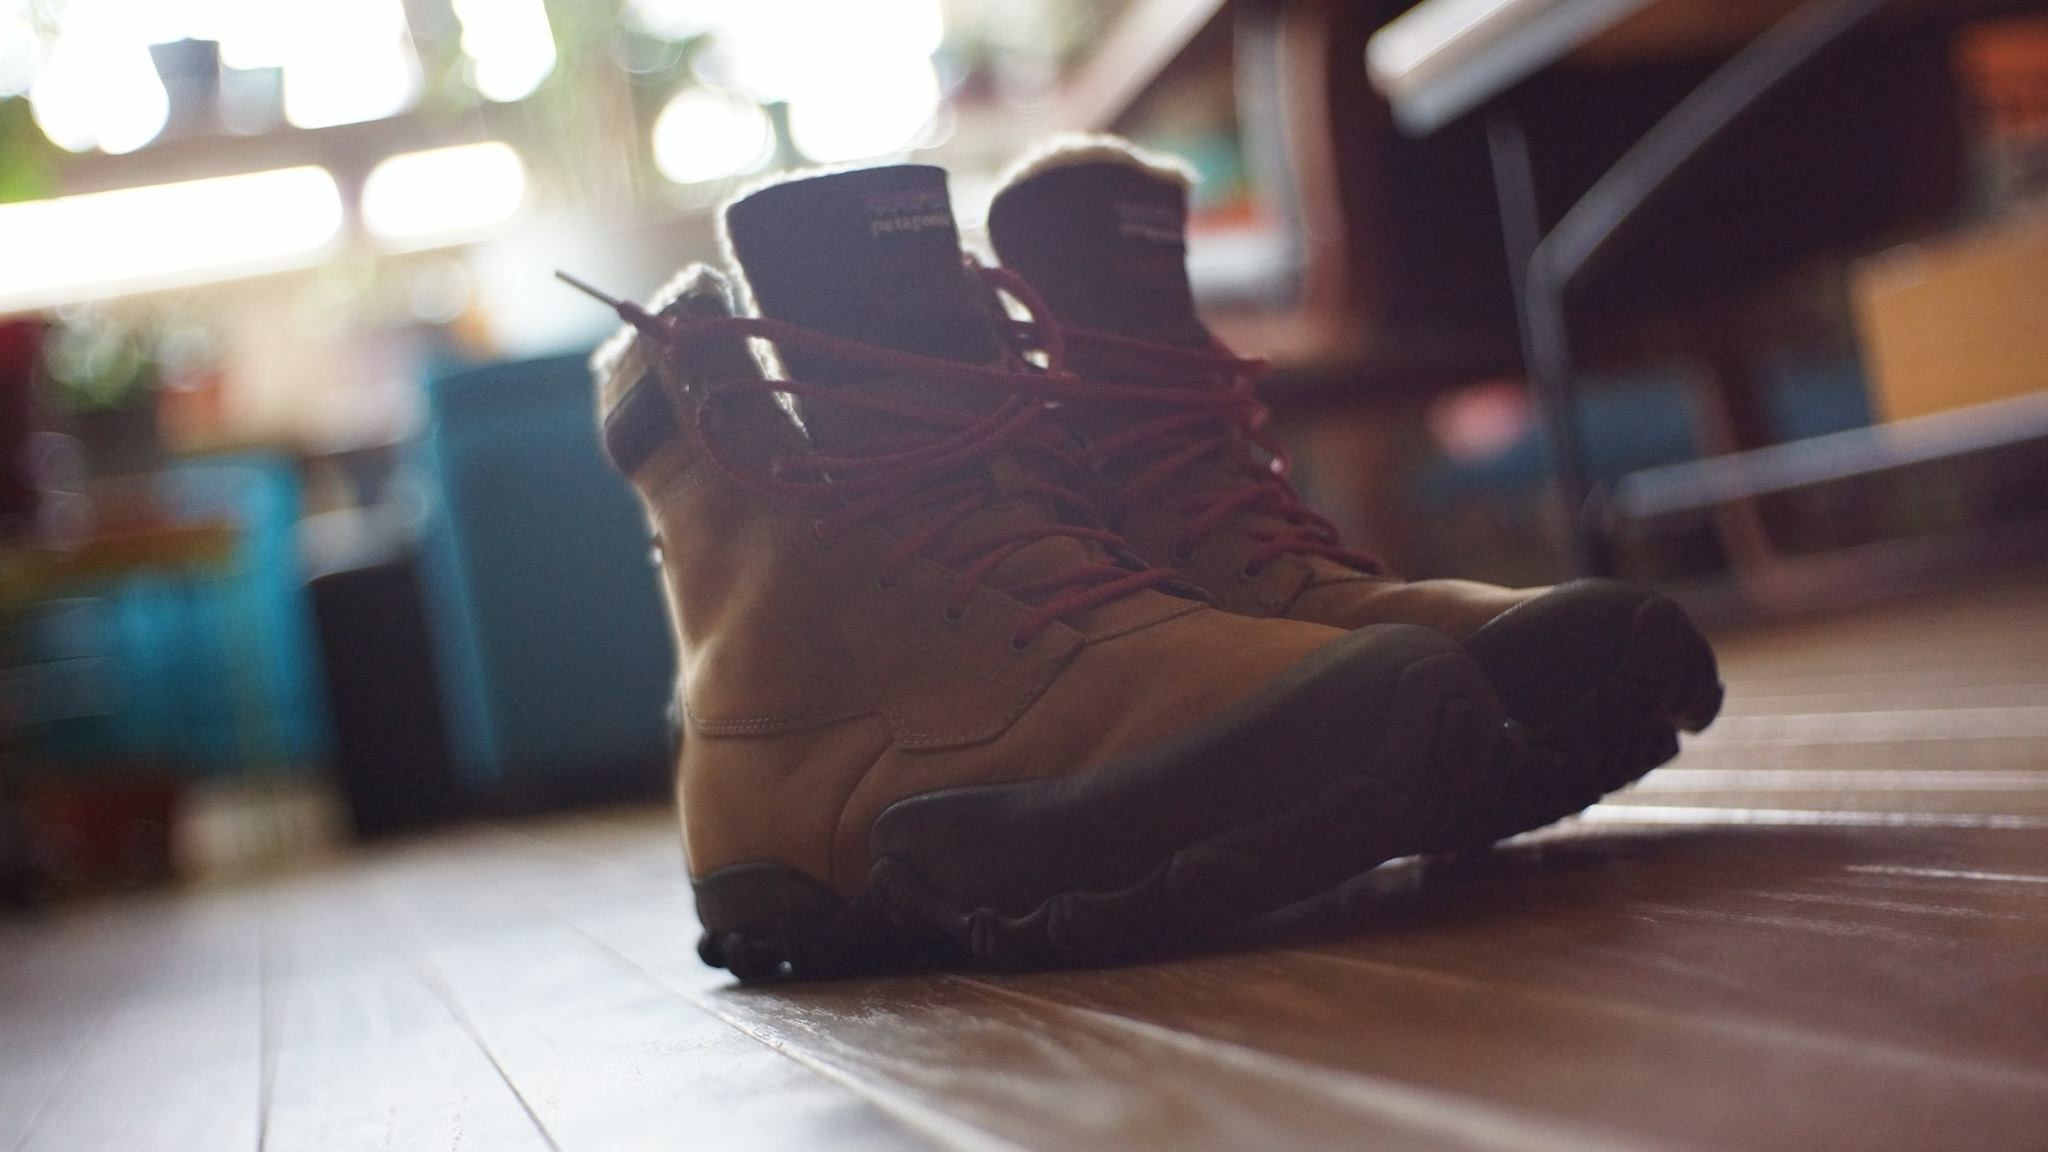 Patagonia Boots Drifter Fujian 35mm 1.6 lens on Sony Nex-7 Body